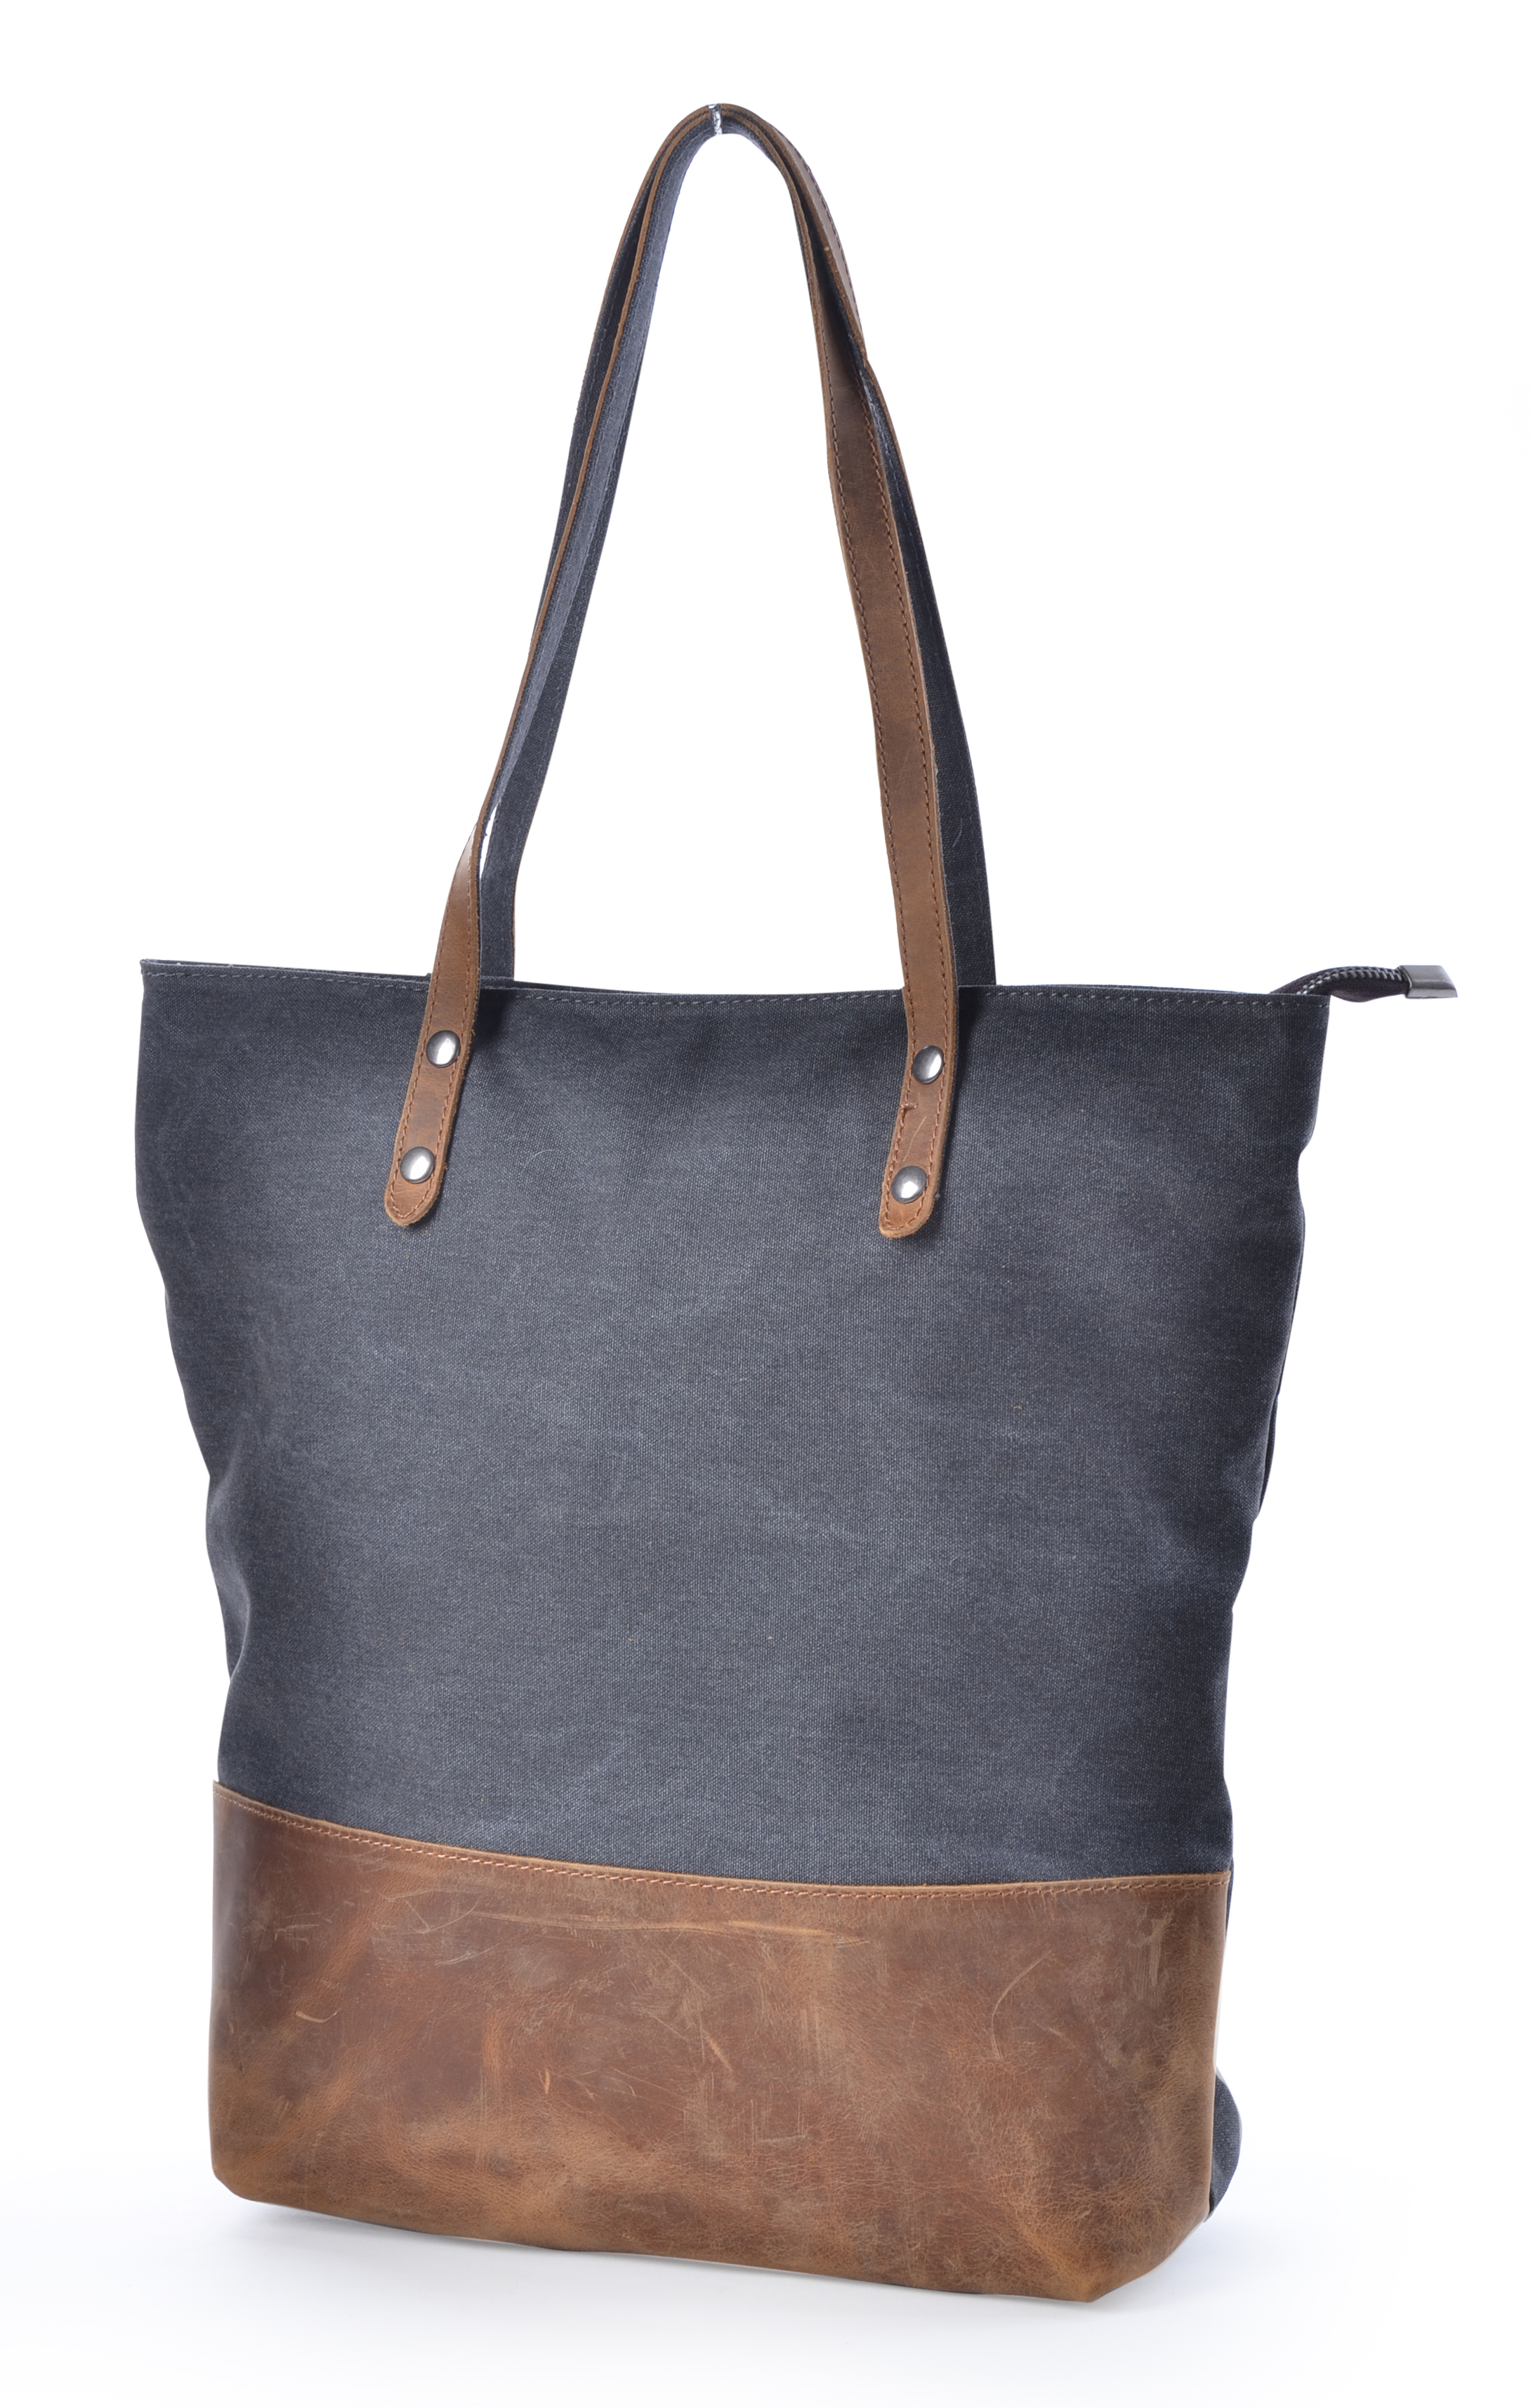 Original After Meeting Cofounder And Designer Dover And COO Deepa Gandhi, 29, Dagne Meaning &quotNew Day&quot In Old Norse Dover Was Born In 2013 With Its Signature Brushed Canvas Totes  BAG BRAND Lo &amp Sons, Ano